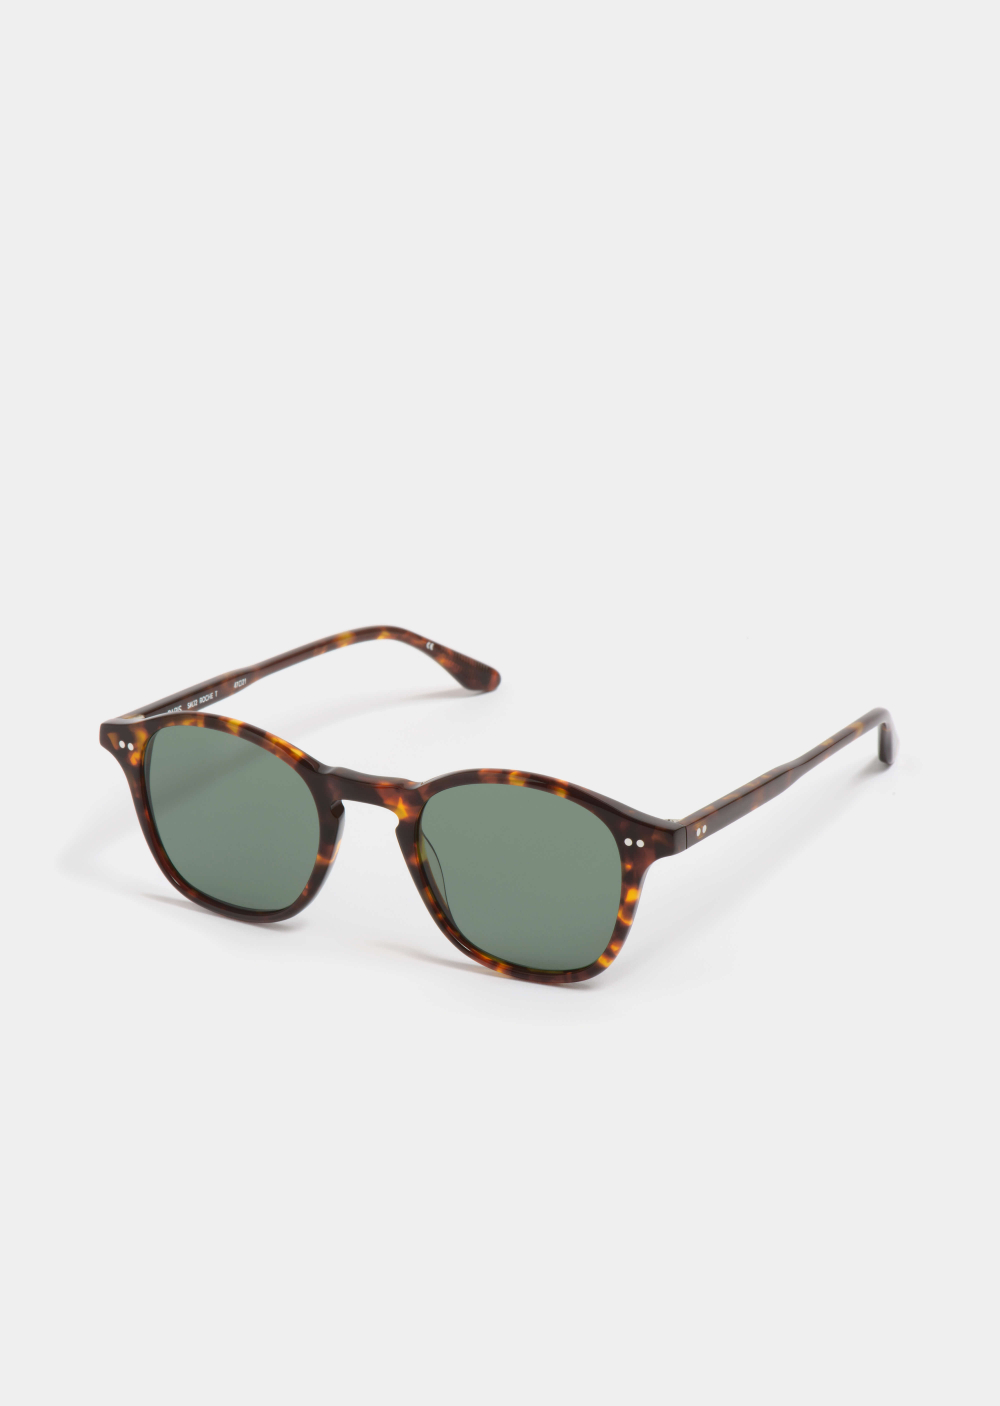 PETER AND MAY -  - LT3 Roche RX tortoise